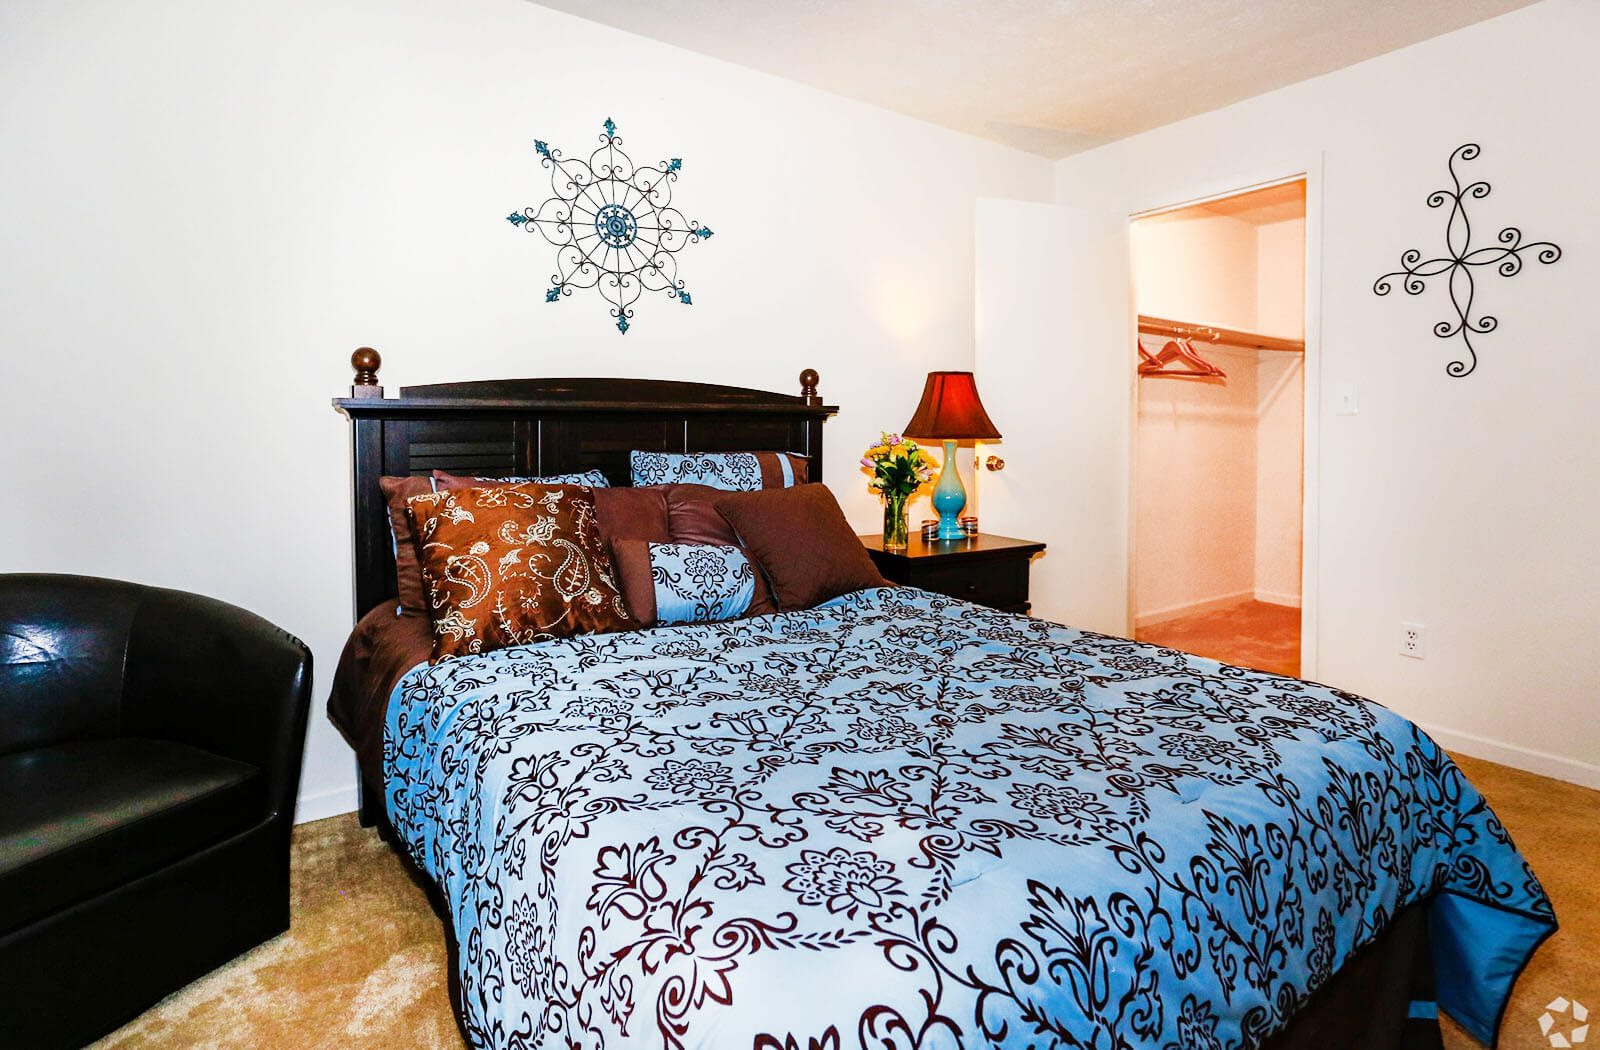 2 Bedroom Apartments in Fairborn, OH